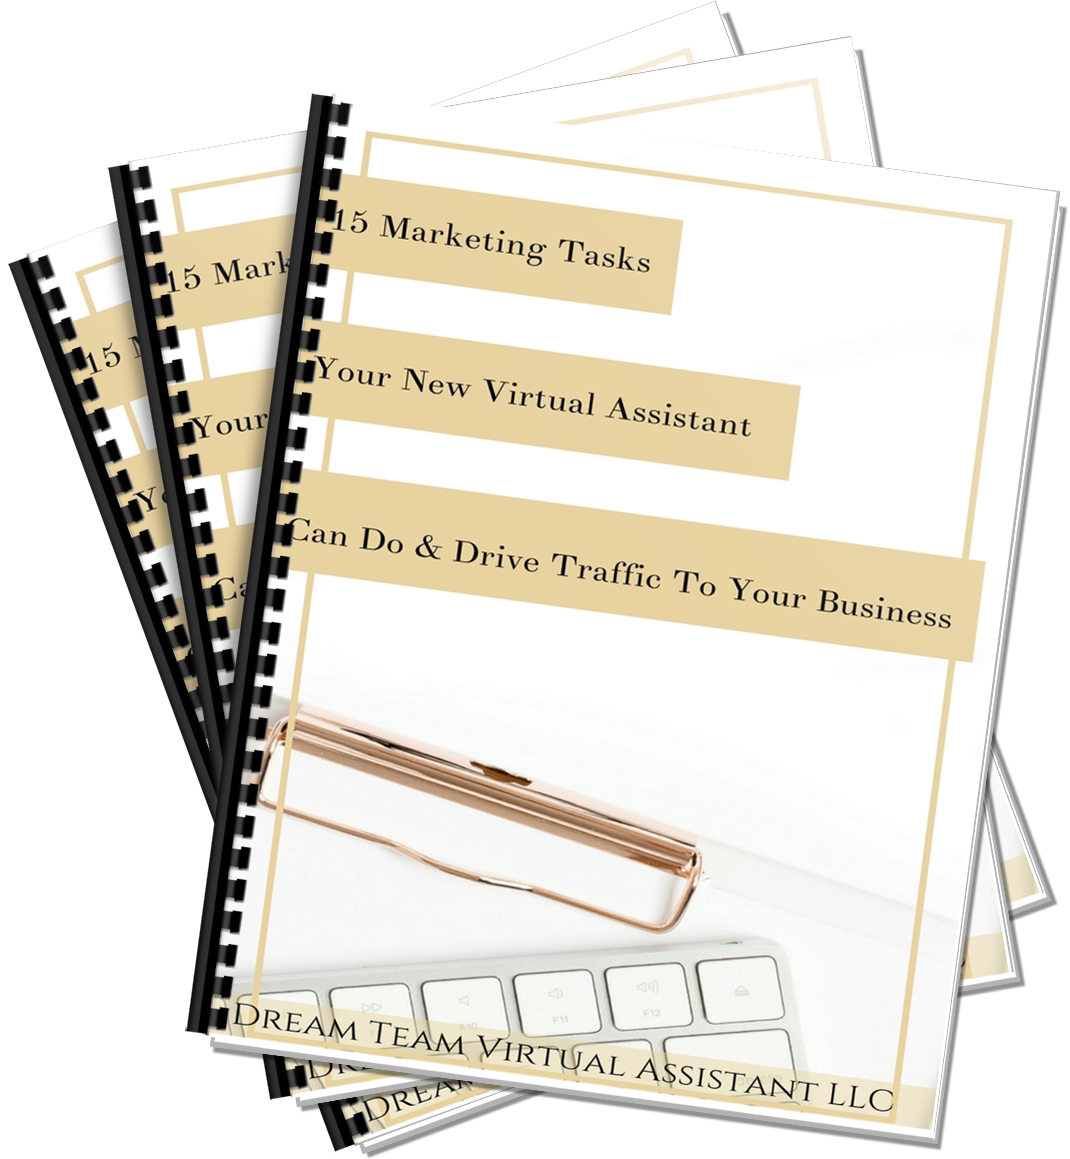 15 Marketing Tasks for your virtual assistant